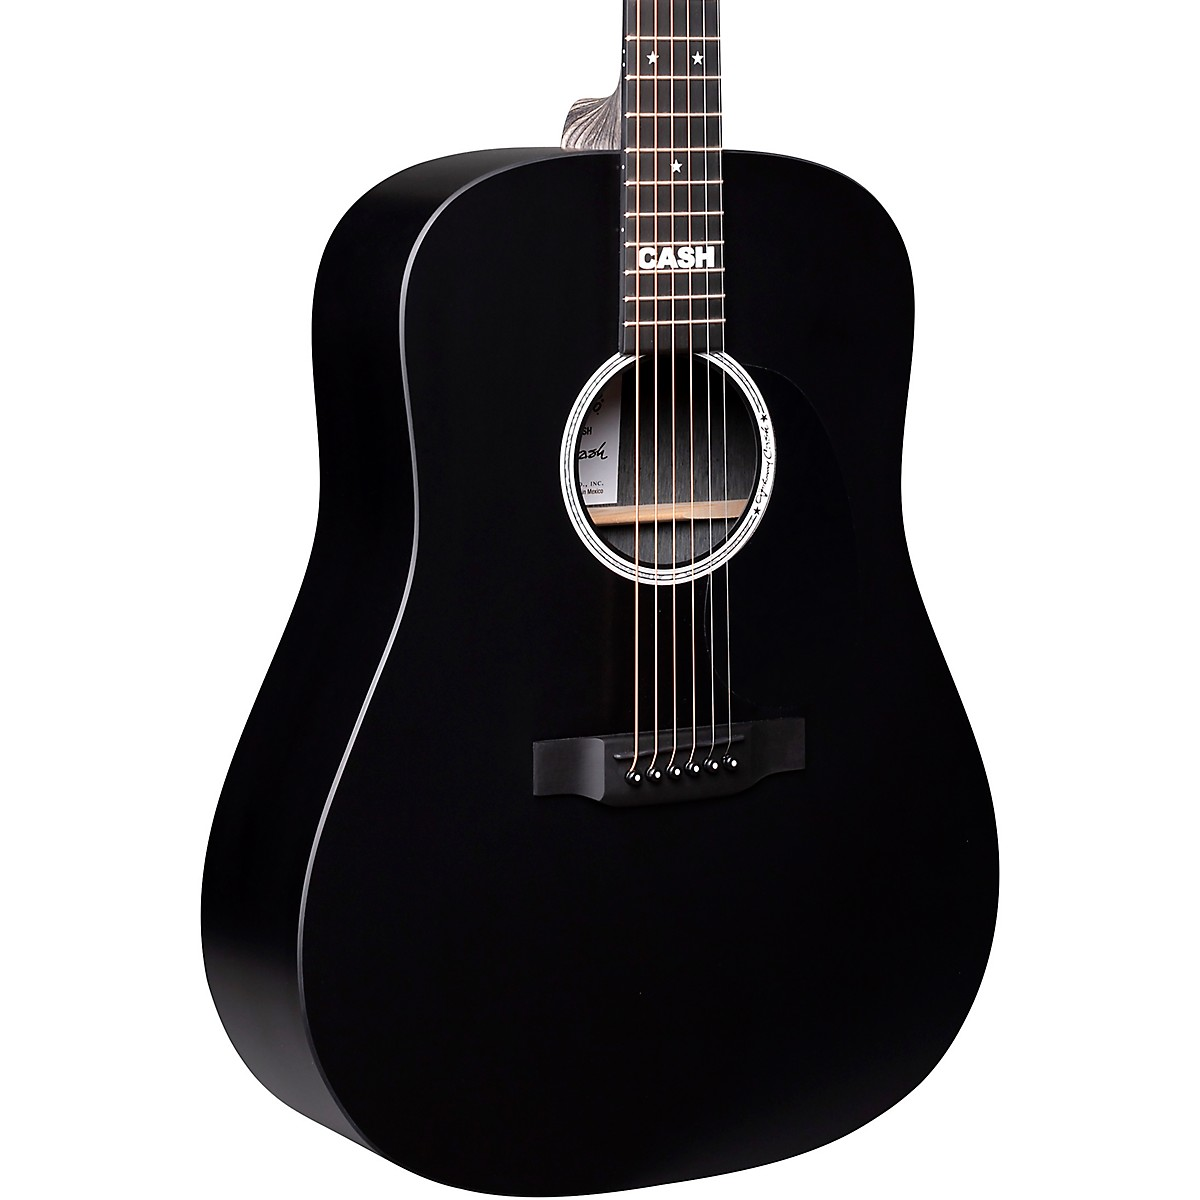 Martin DX Johnny Cash Signature Dreadnought Acoustic-Electric Guitar